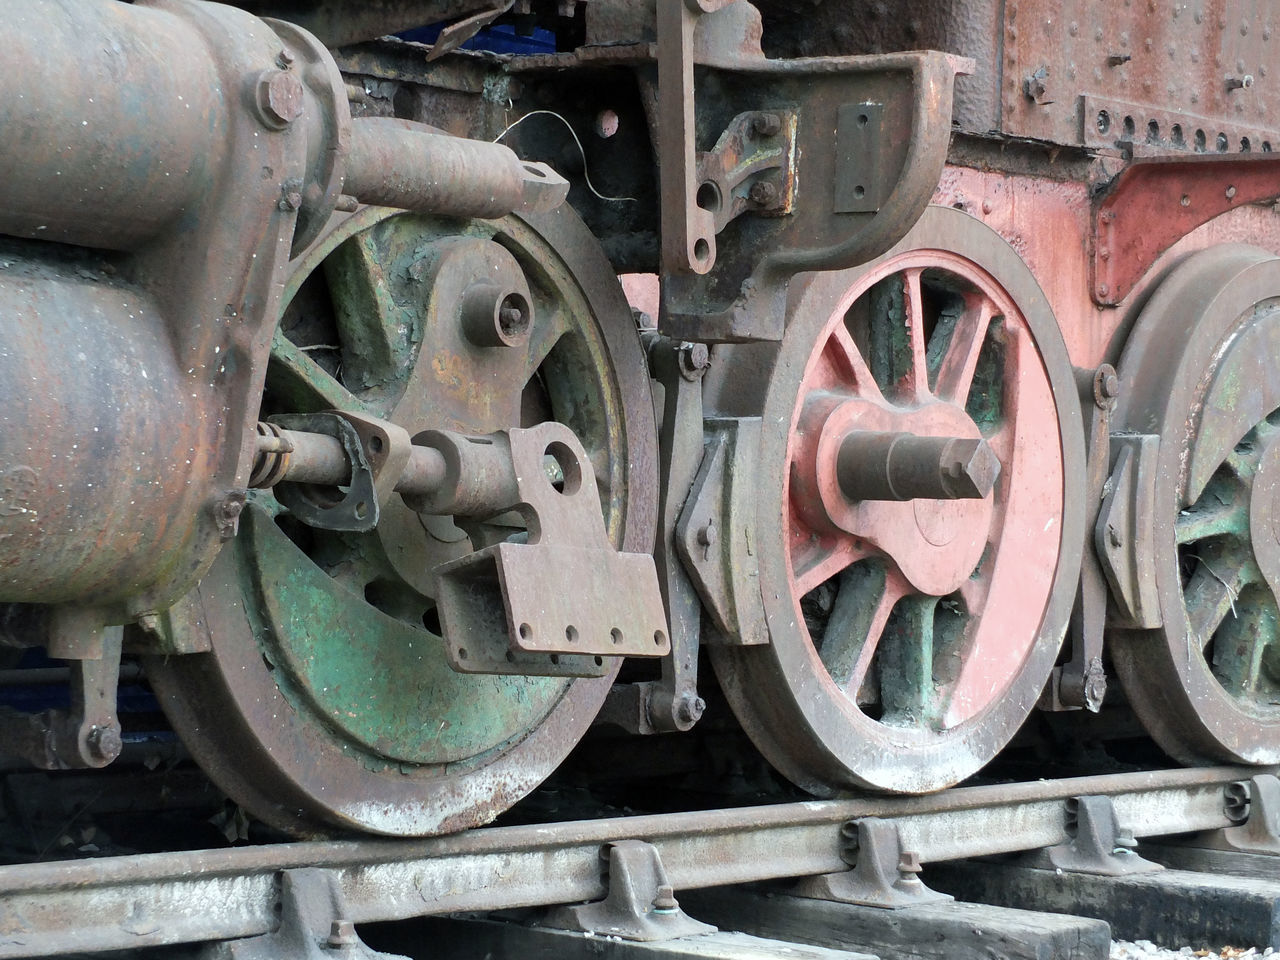 train - vehicle, transportation, mode of transport, metal, rail transportation, wheel, stationary, railroad track, steam train, no people, outdoors, locomotive, day, land vehicle, close-up